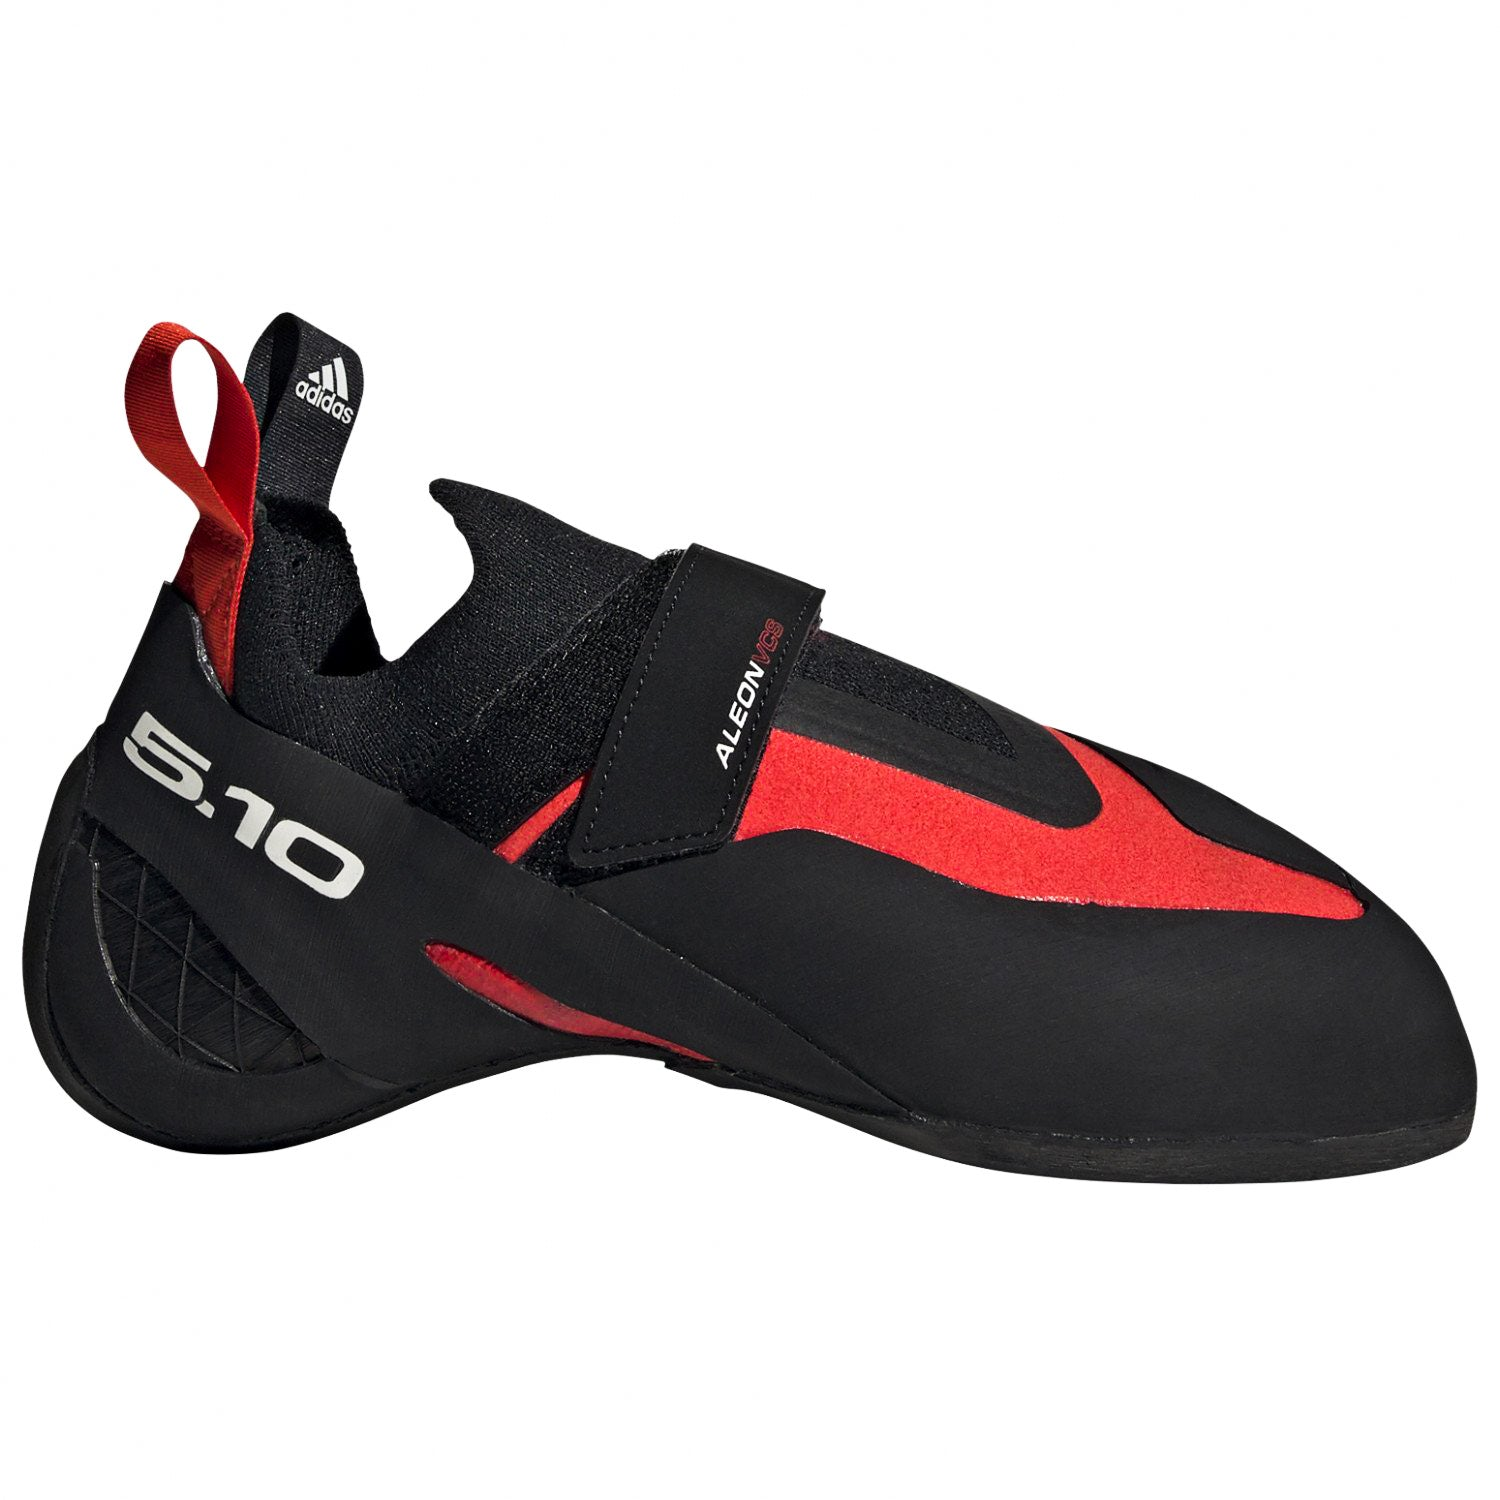 Five Ten Aleon climbing shoe, outer side view in red and black colours